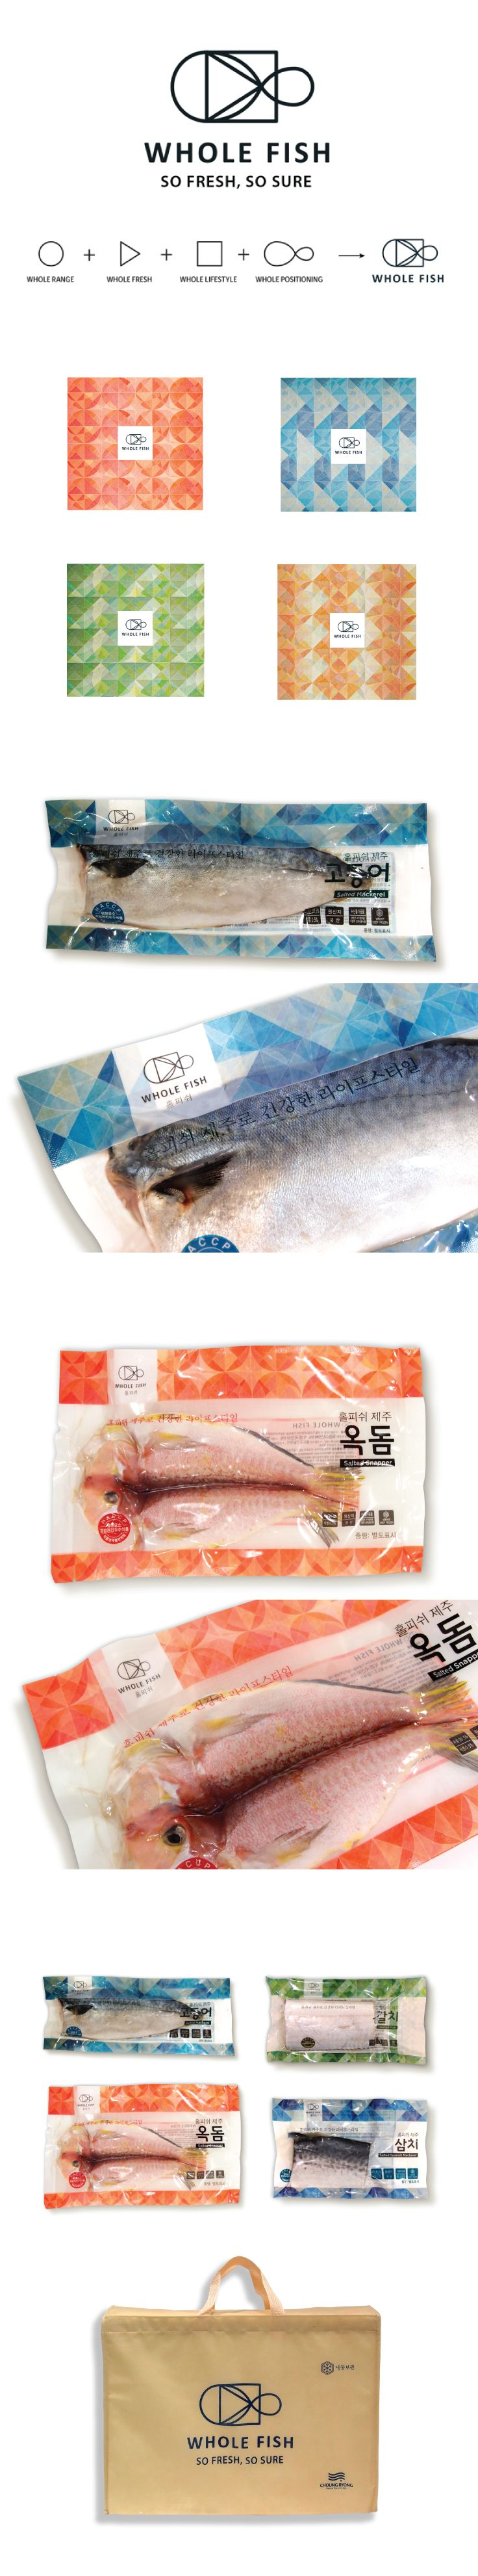 A frozen fish brand creation, WHOLE FISH, from strategy,naming, slogan to package design. We won 2013 Best Brand Award!